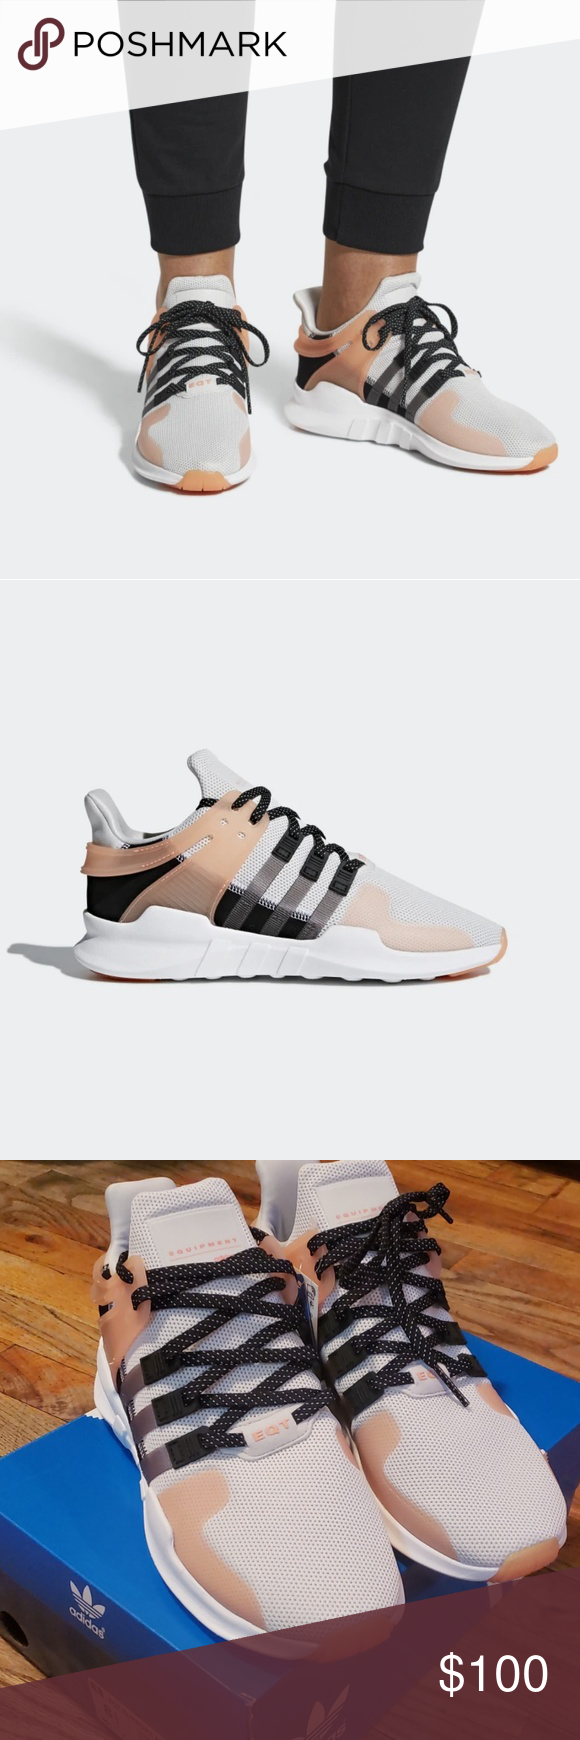 Adidas EQT Support ADV W sneakers NWT NBW Adidas sneakers